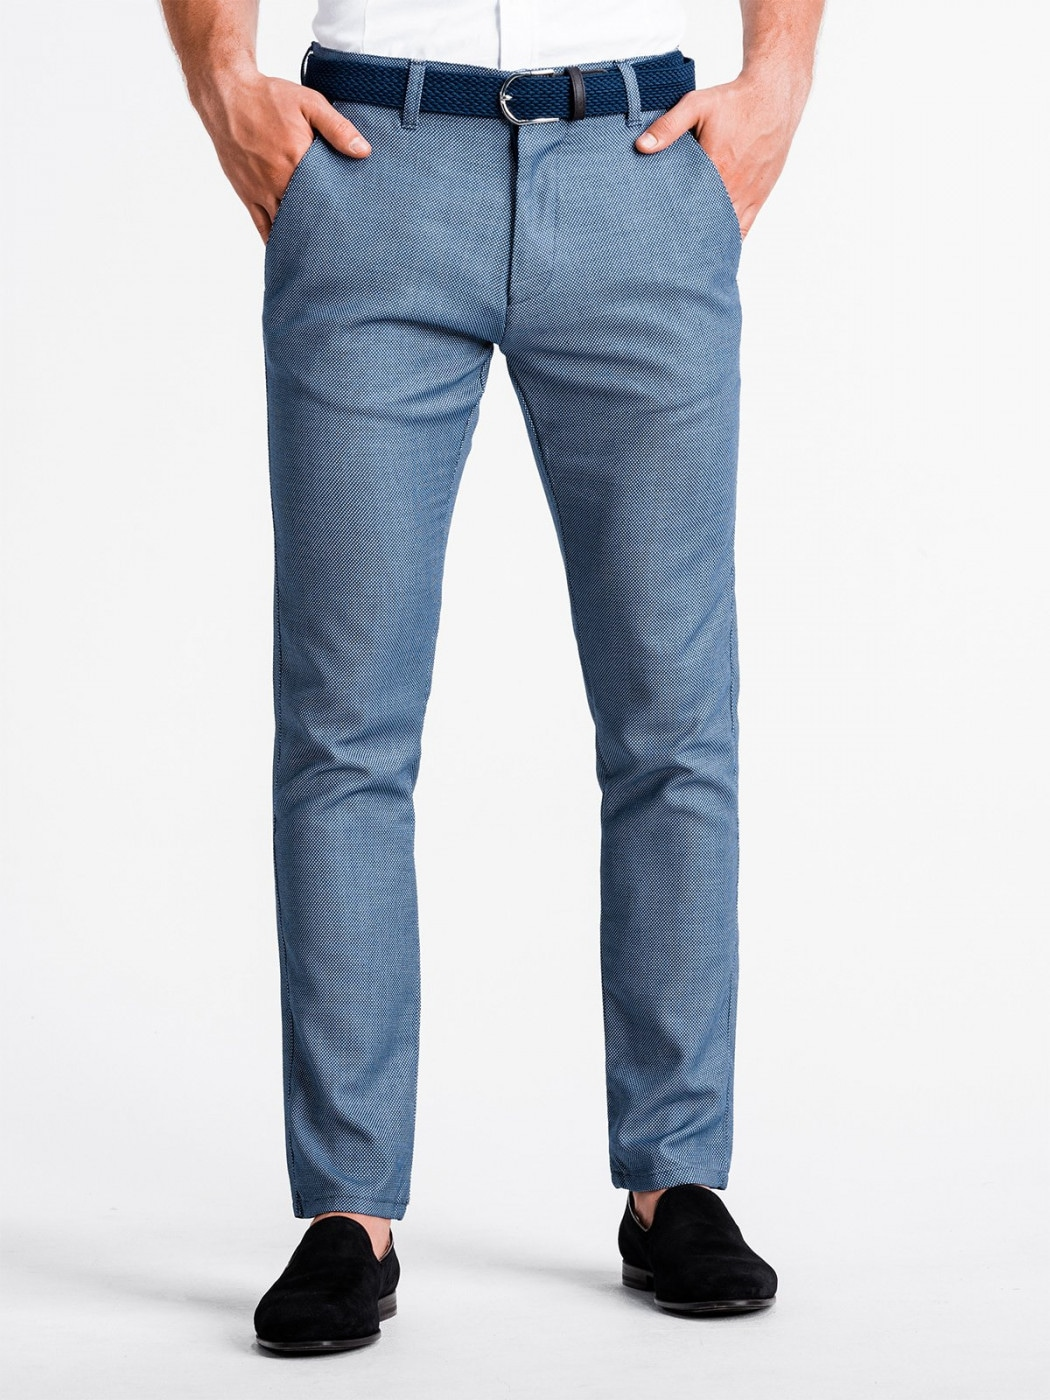 Men's pants chinos P831 - blue